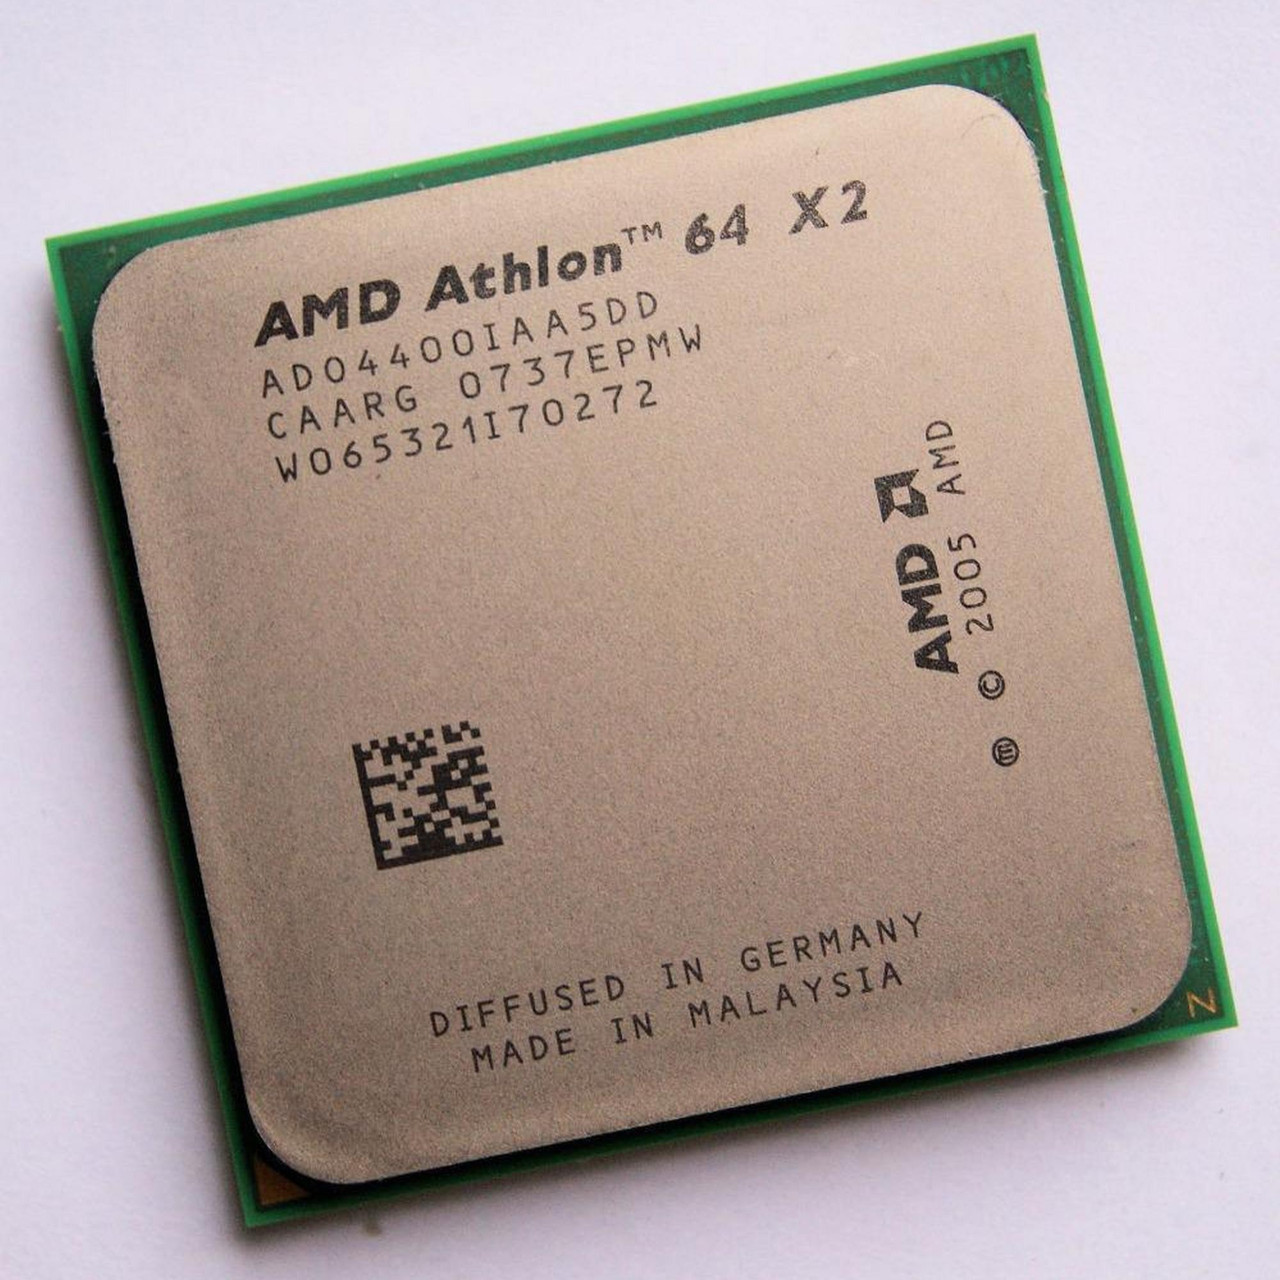 Процессор AMD Athlon 64 X2 4400+ 2.30GHz/1M/2000 (ADO4400IAA5DD) sAM2, tray